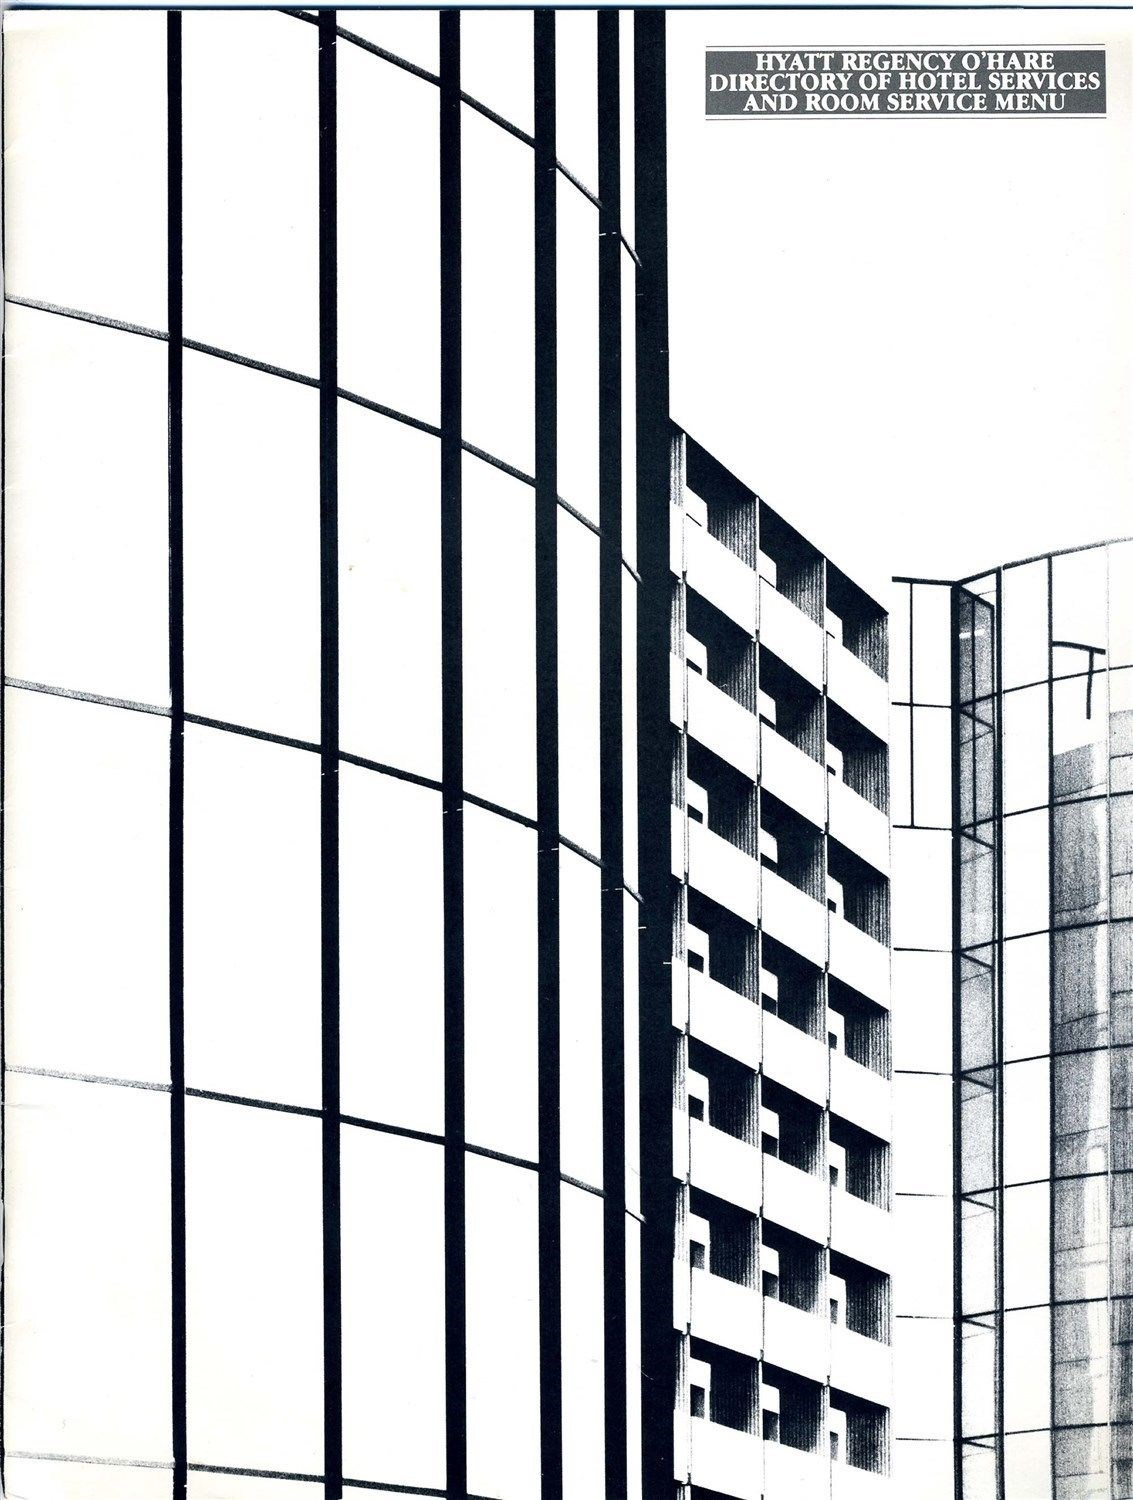 Details about Hyatt Regency O'Hare Directory of Hotel Services & Room  Service Menu 1980's